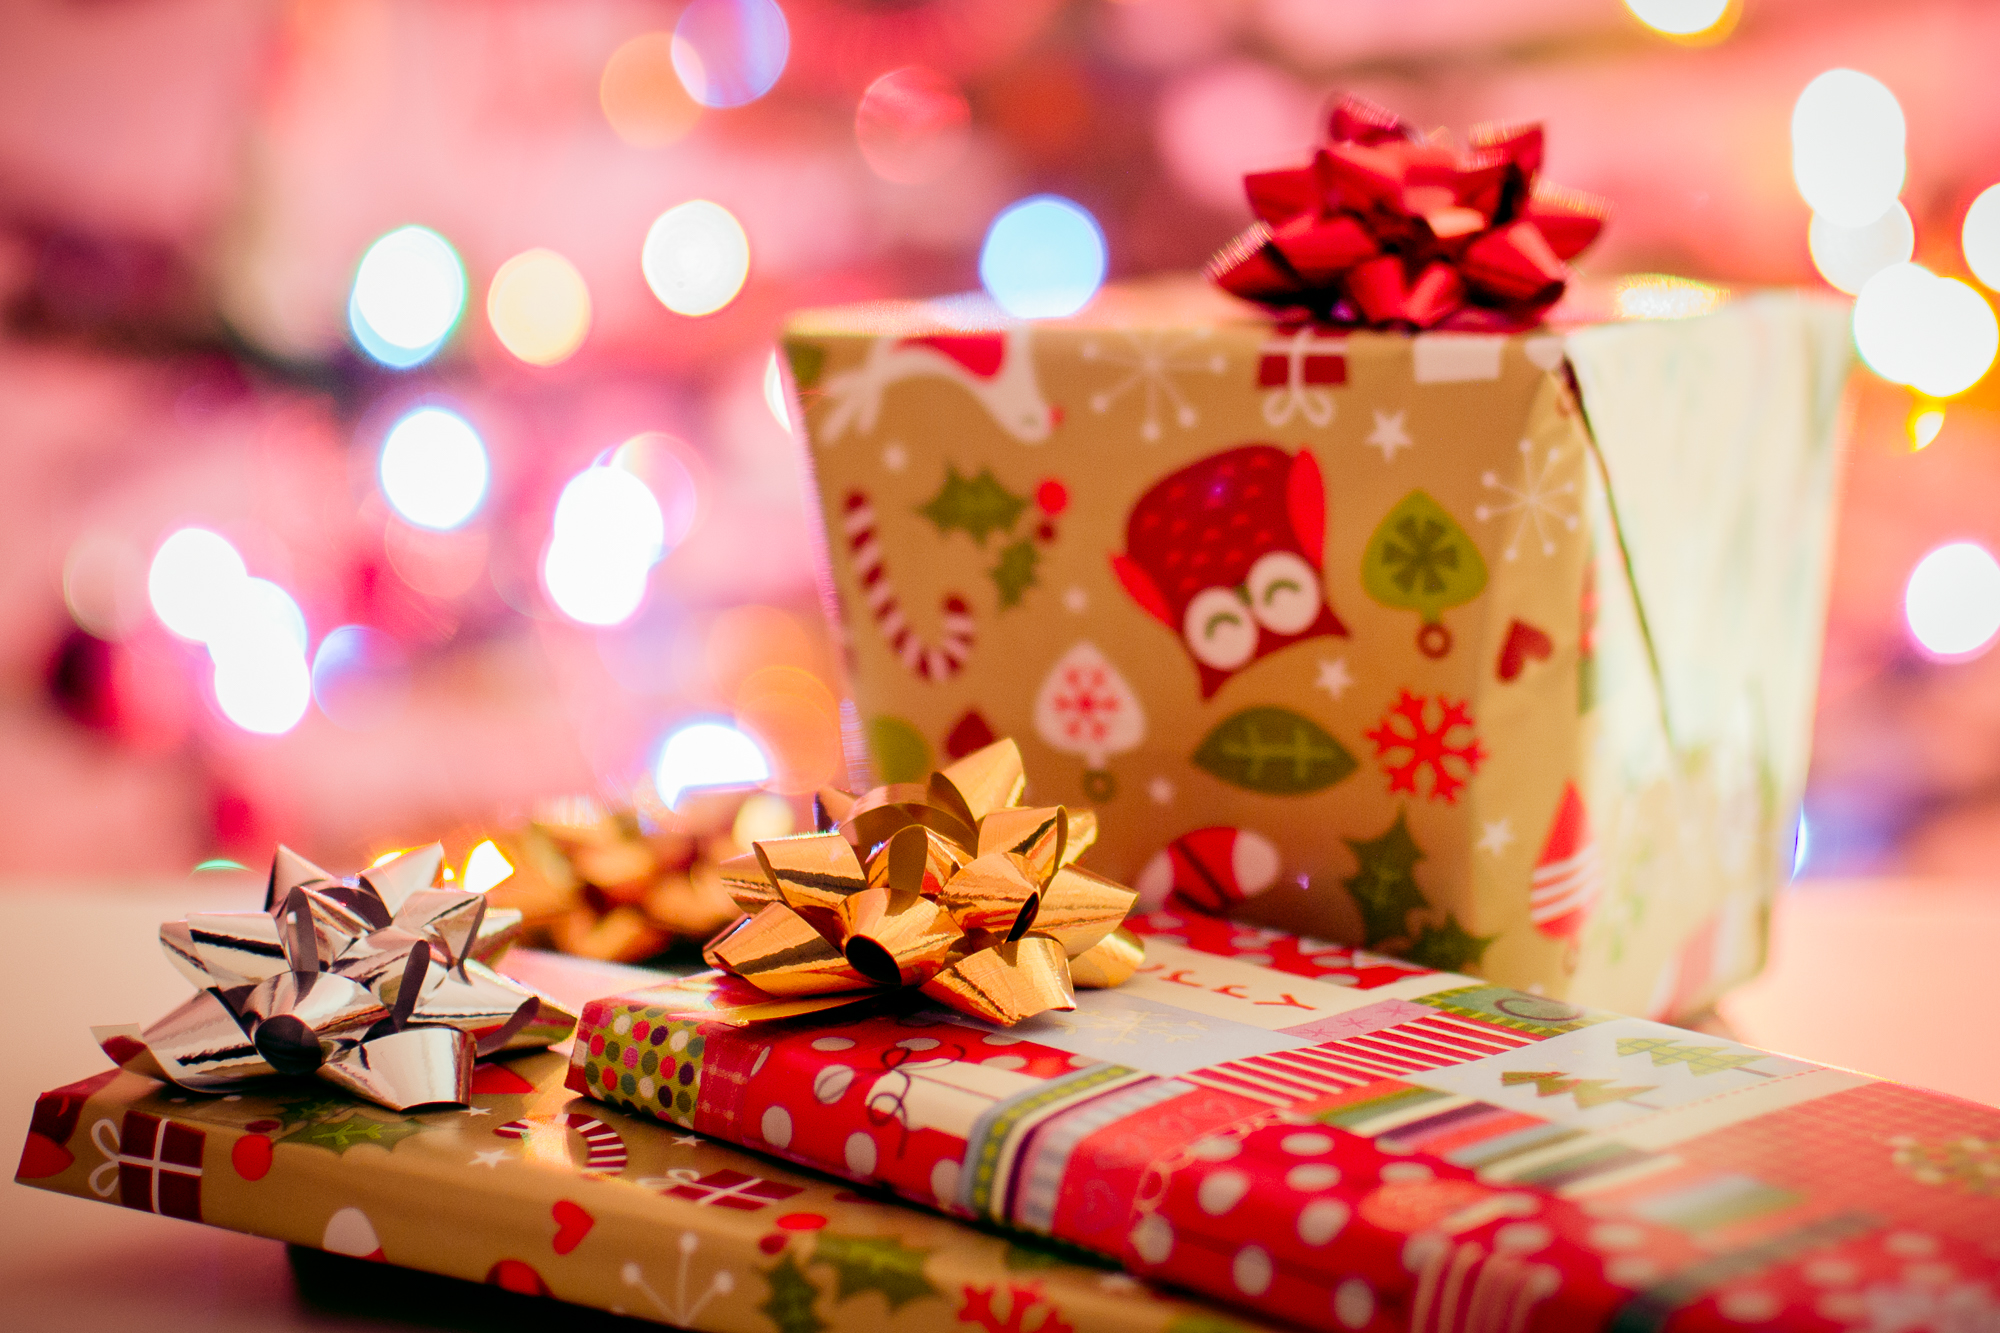 8 Best Splurge Christmas Gift Ideas for the Whole Family